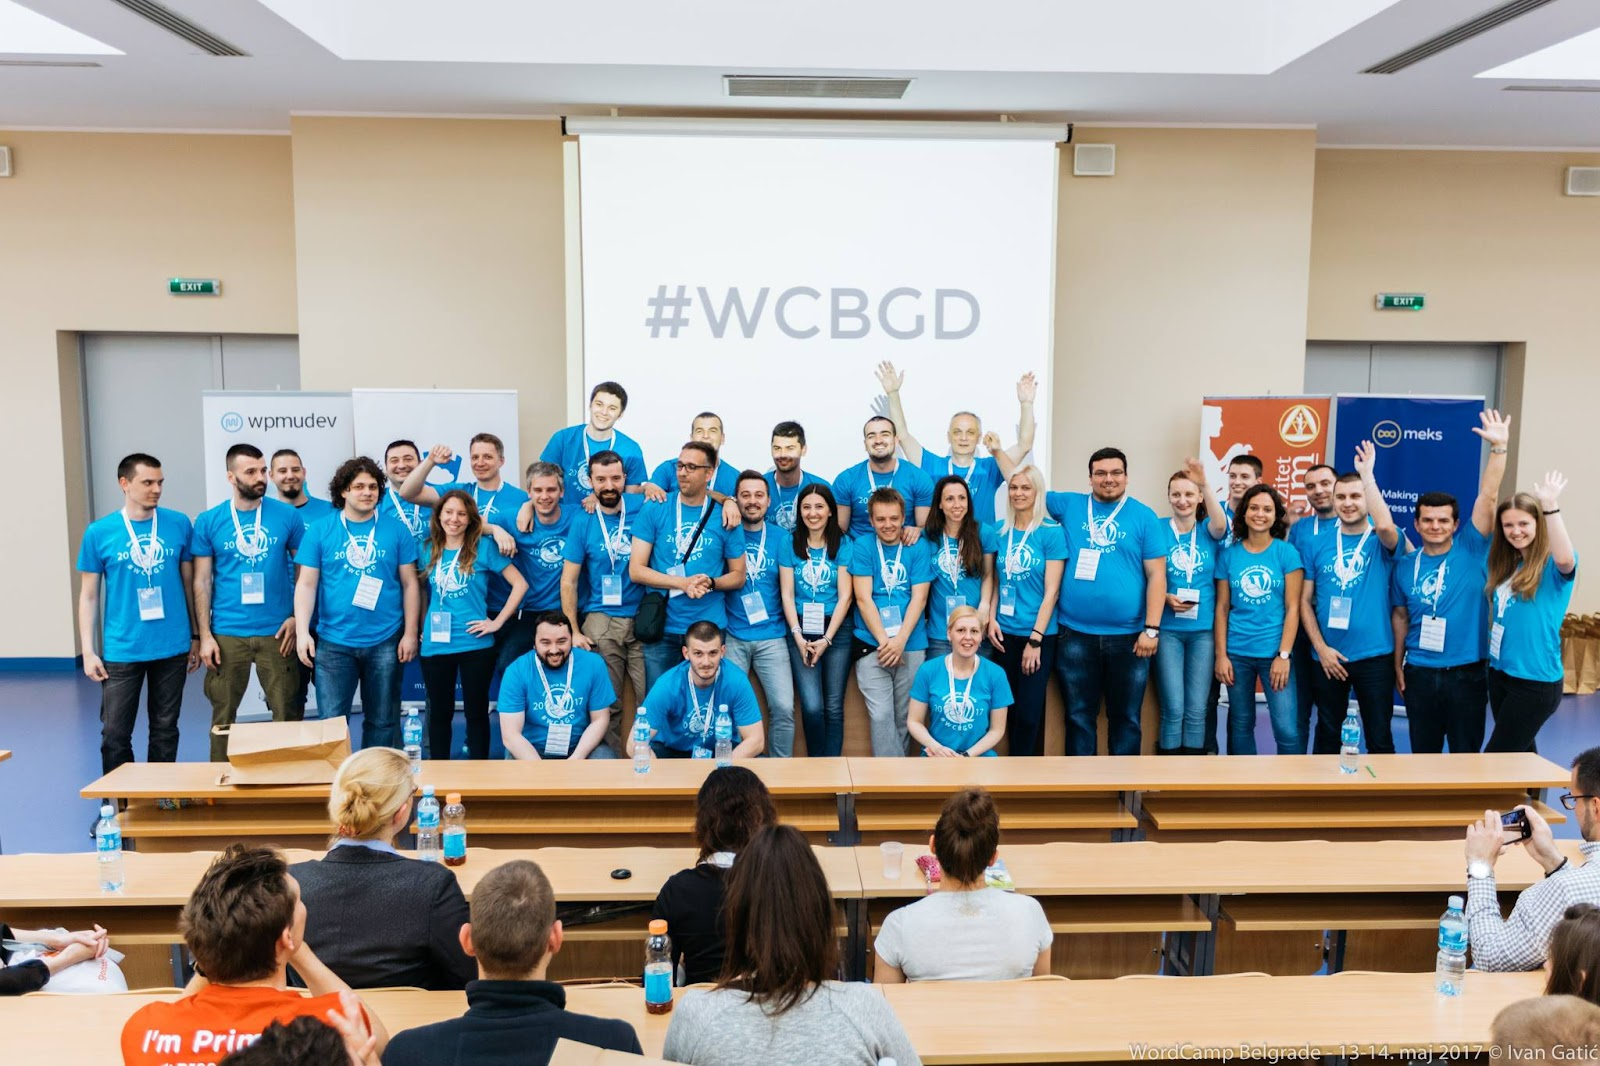 WCBGD group picture